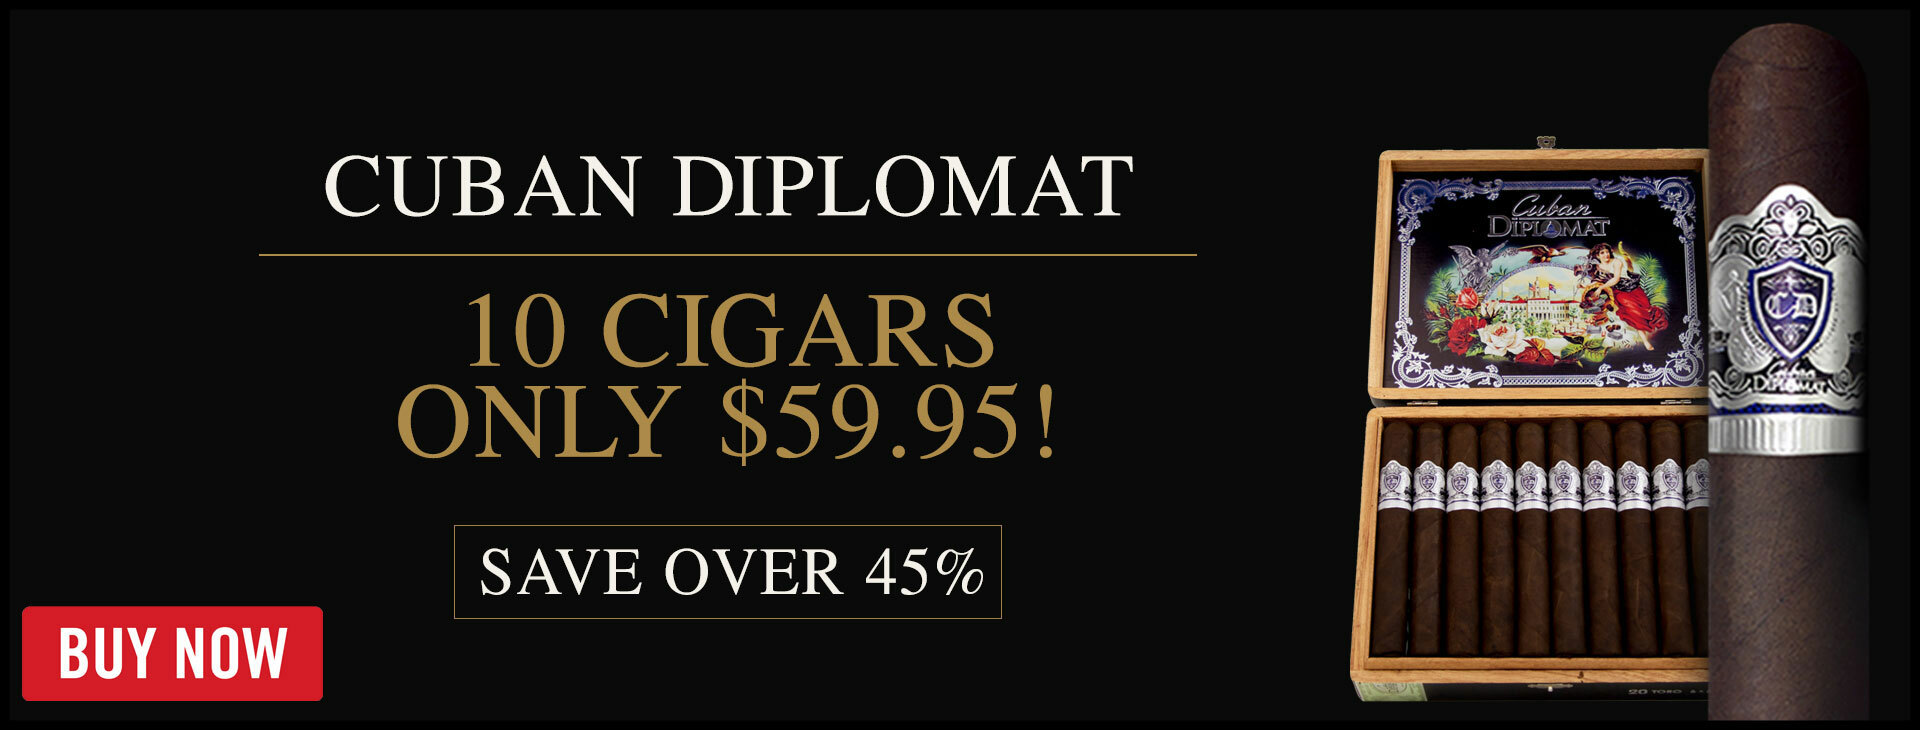 50% OFF Cuban Diplomat Limited Edition